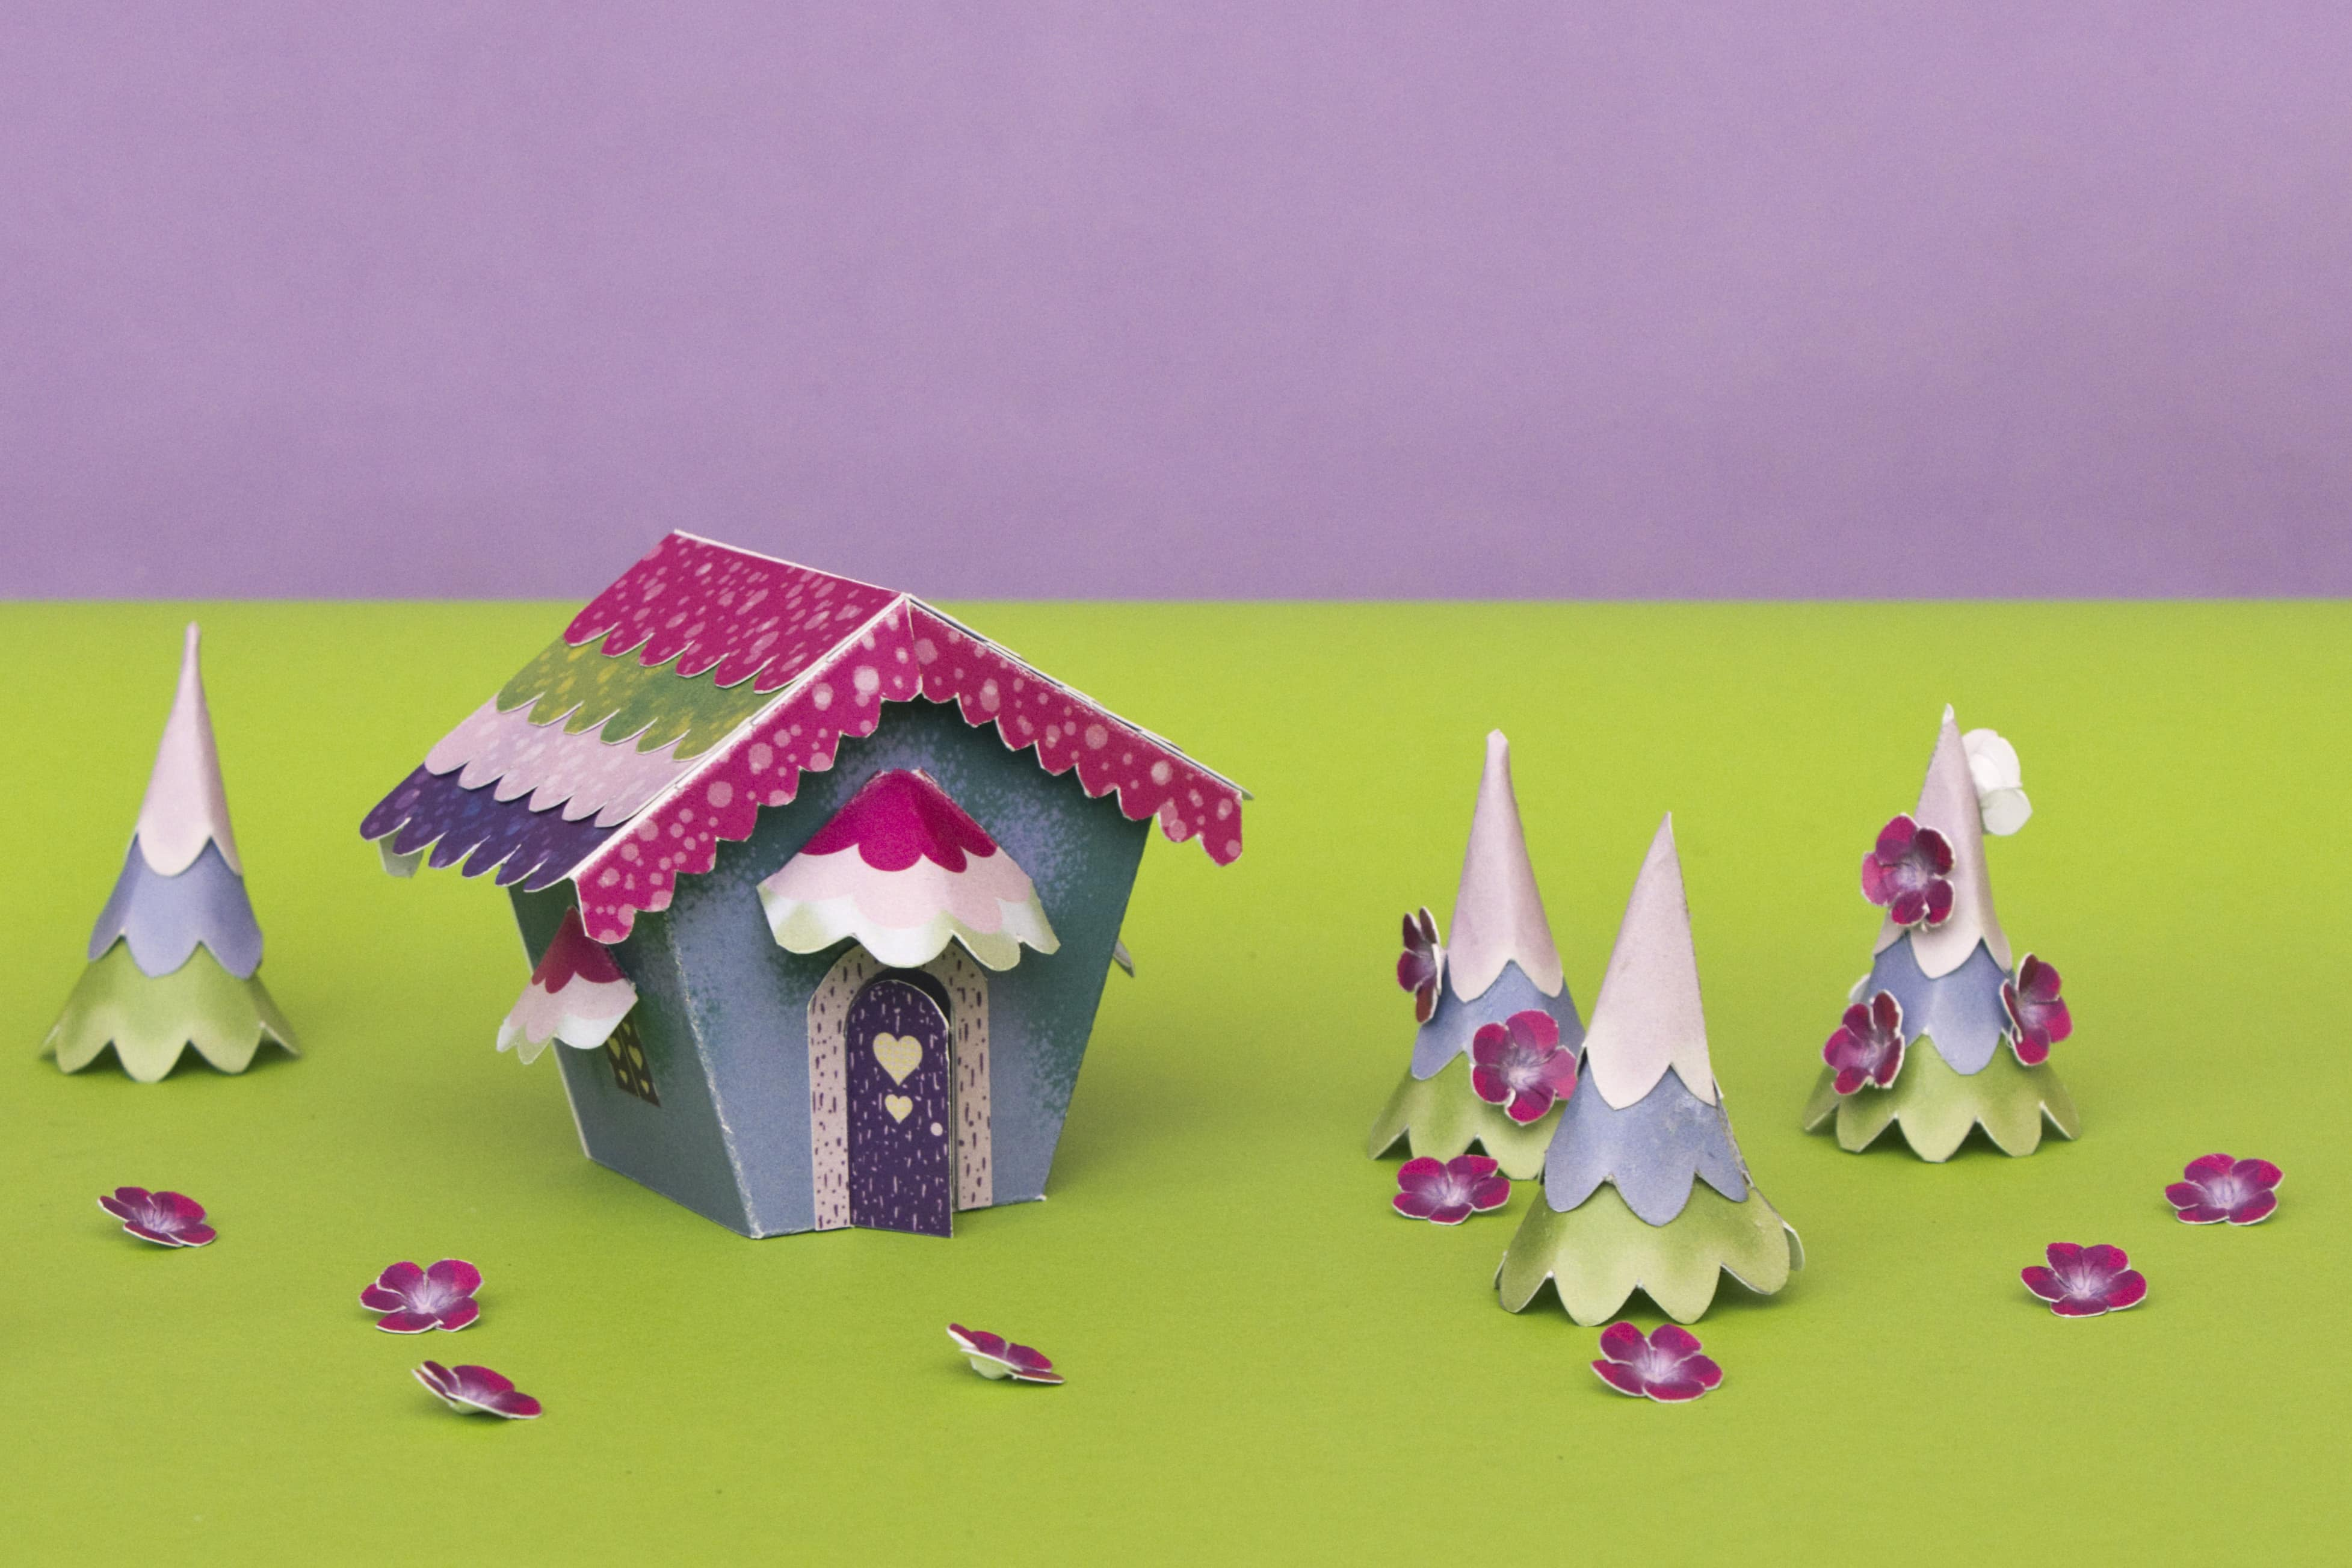 fairy tale village made from paper